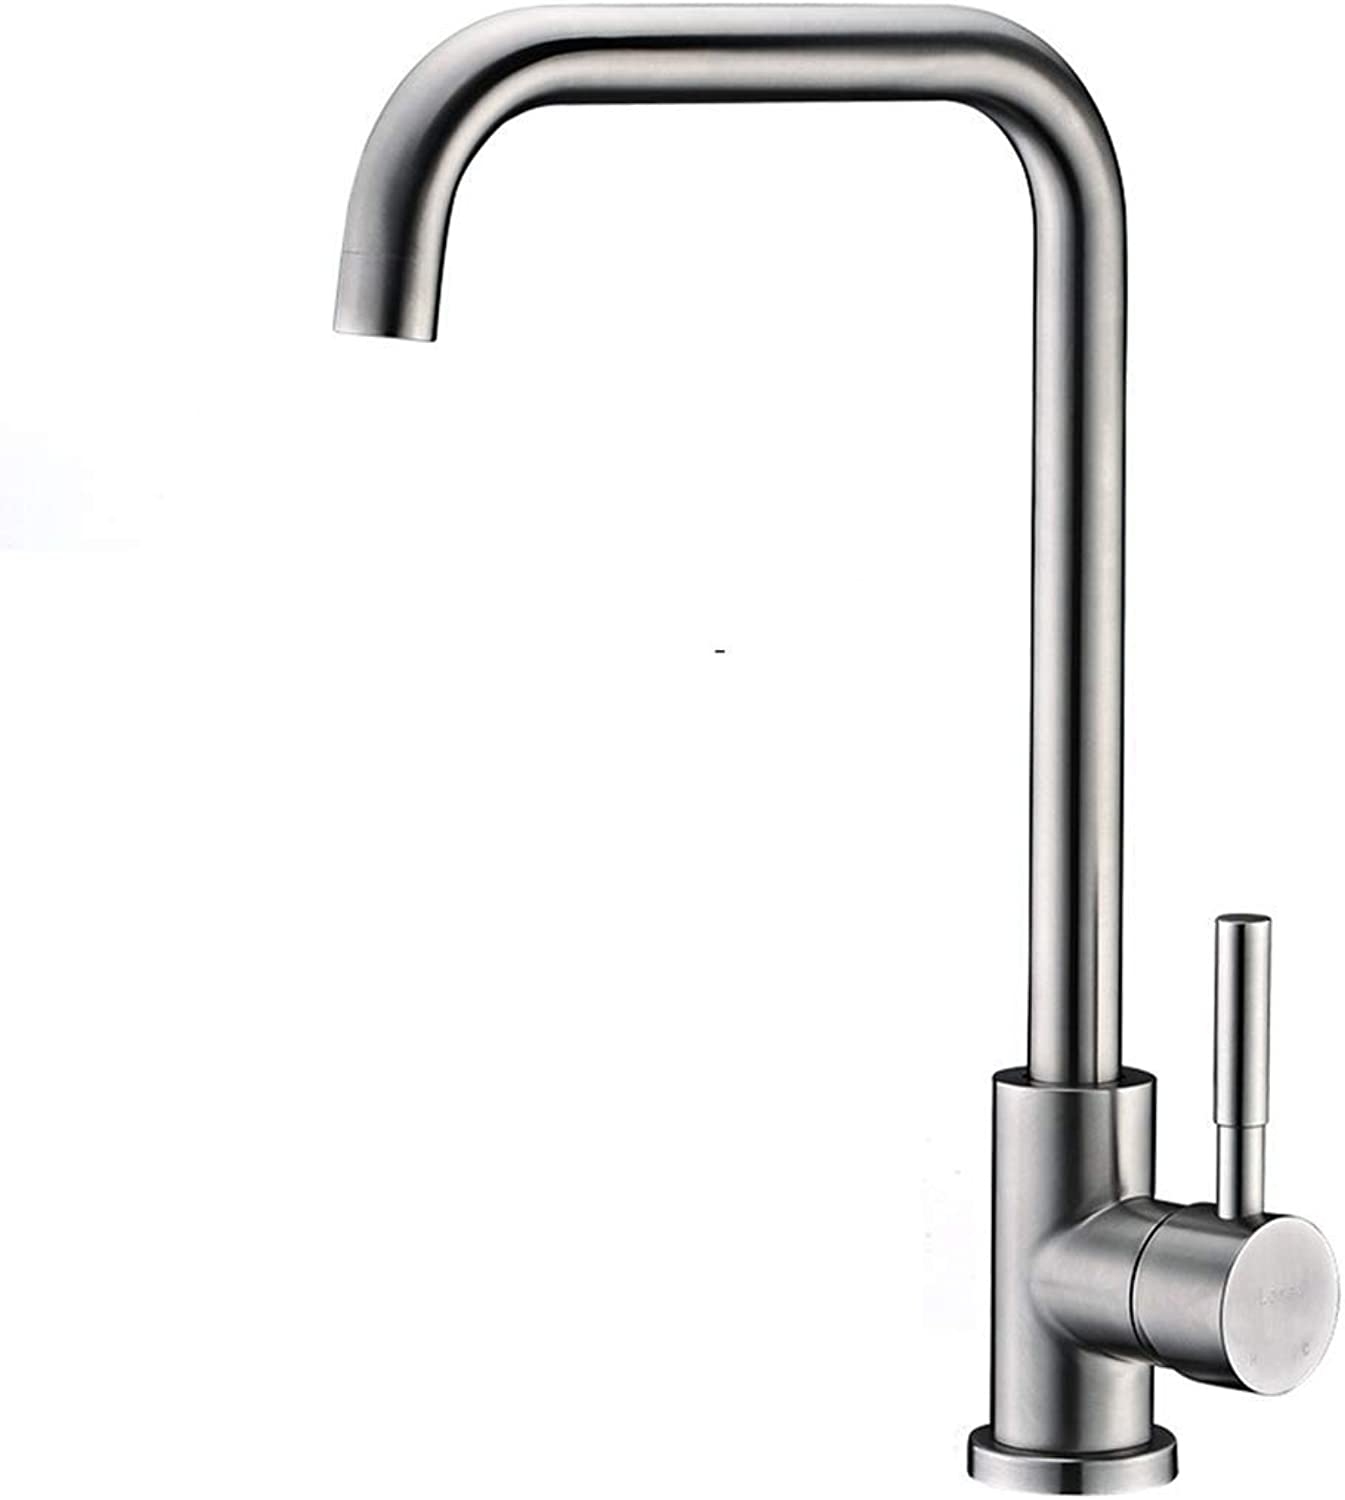 JBP Max Faucet 304 Stainless Steel Sink Faucet Kitchen Sink Hot And Cold Water Faucet 360 Degree redation Easy To Use